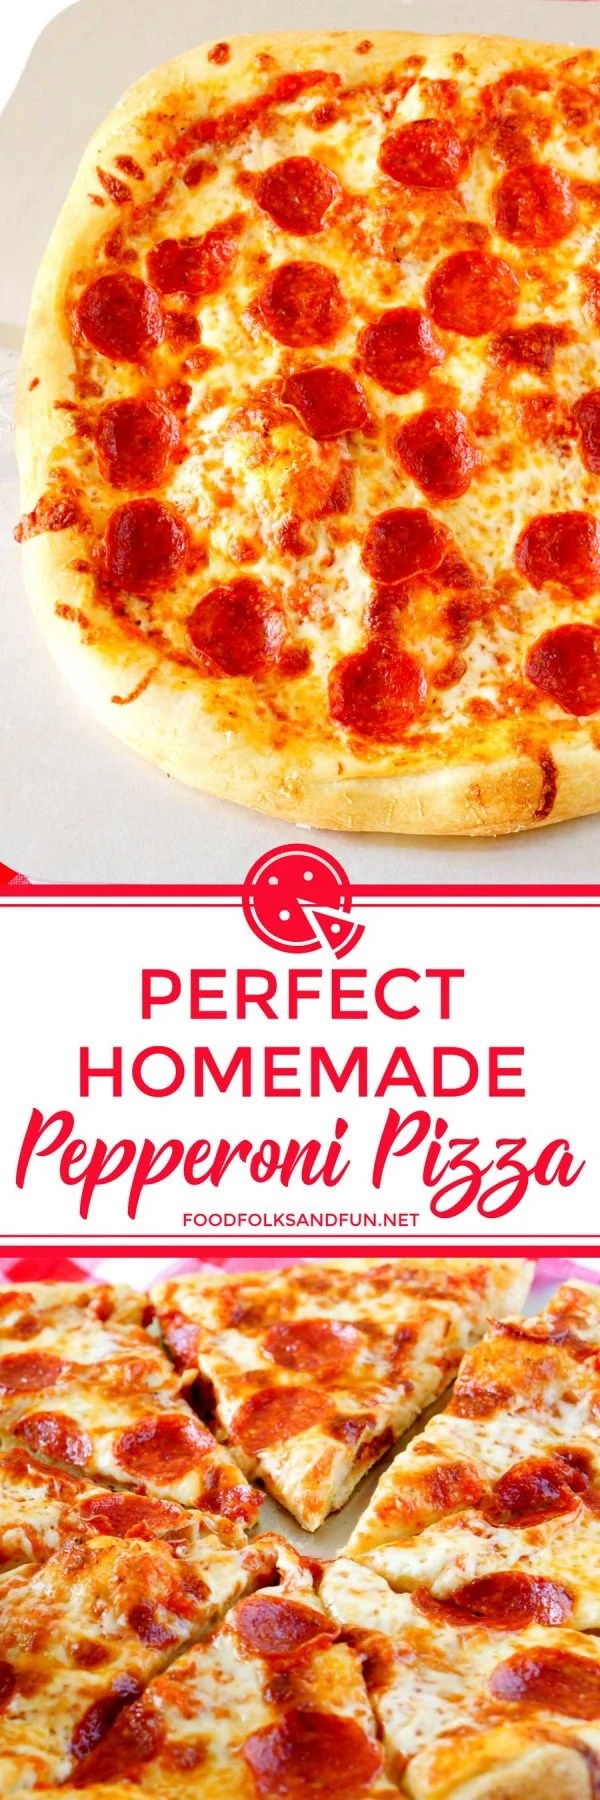 Pepperoni Pizza made from scratch! This is the BEST Homemade Pizza Recipe, and you'll be craving this pizza weekly! Learn my tips and tricks and you'll be making pizza like a pro in no time! via @foodfolksandfun